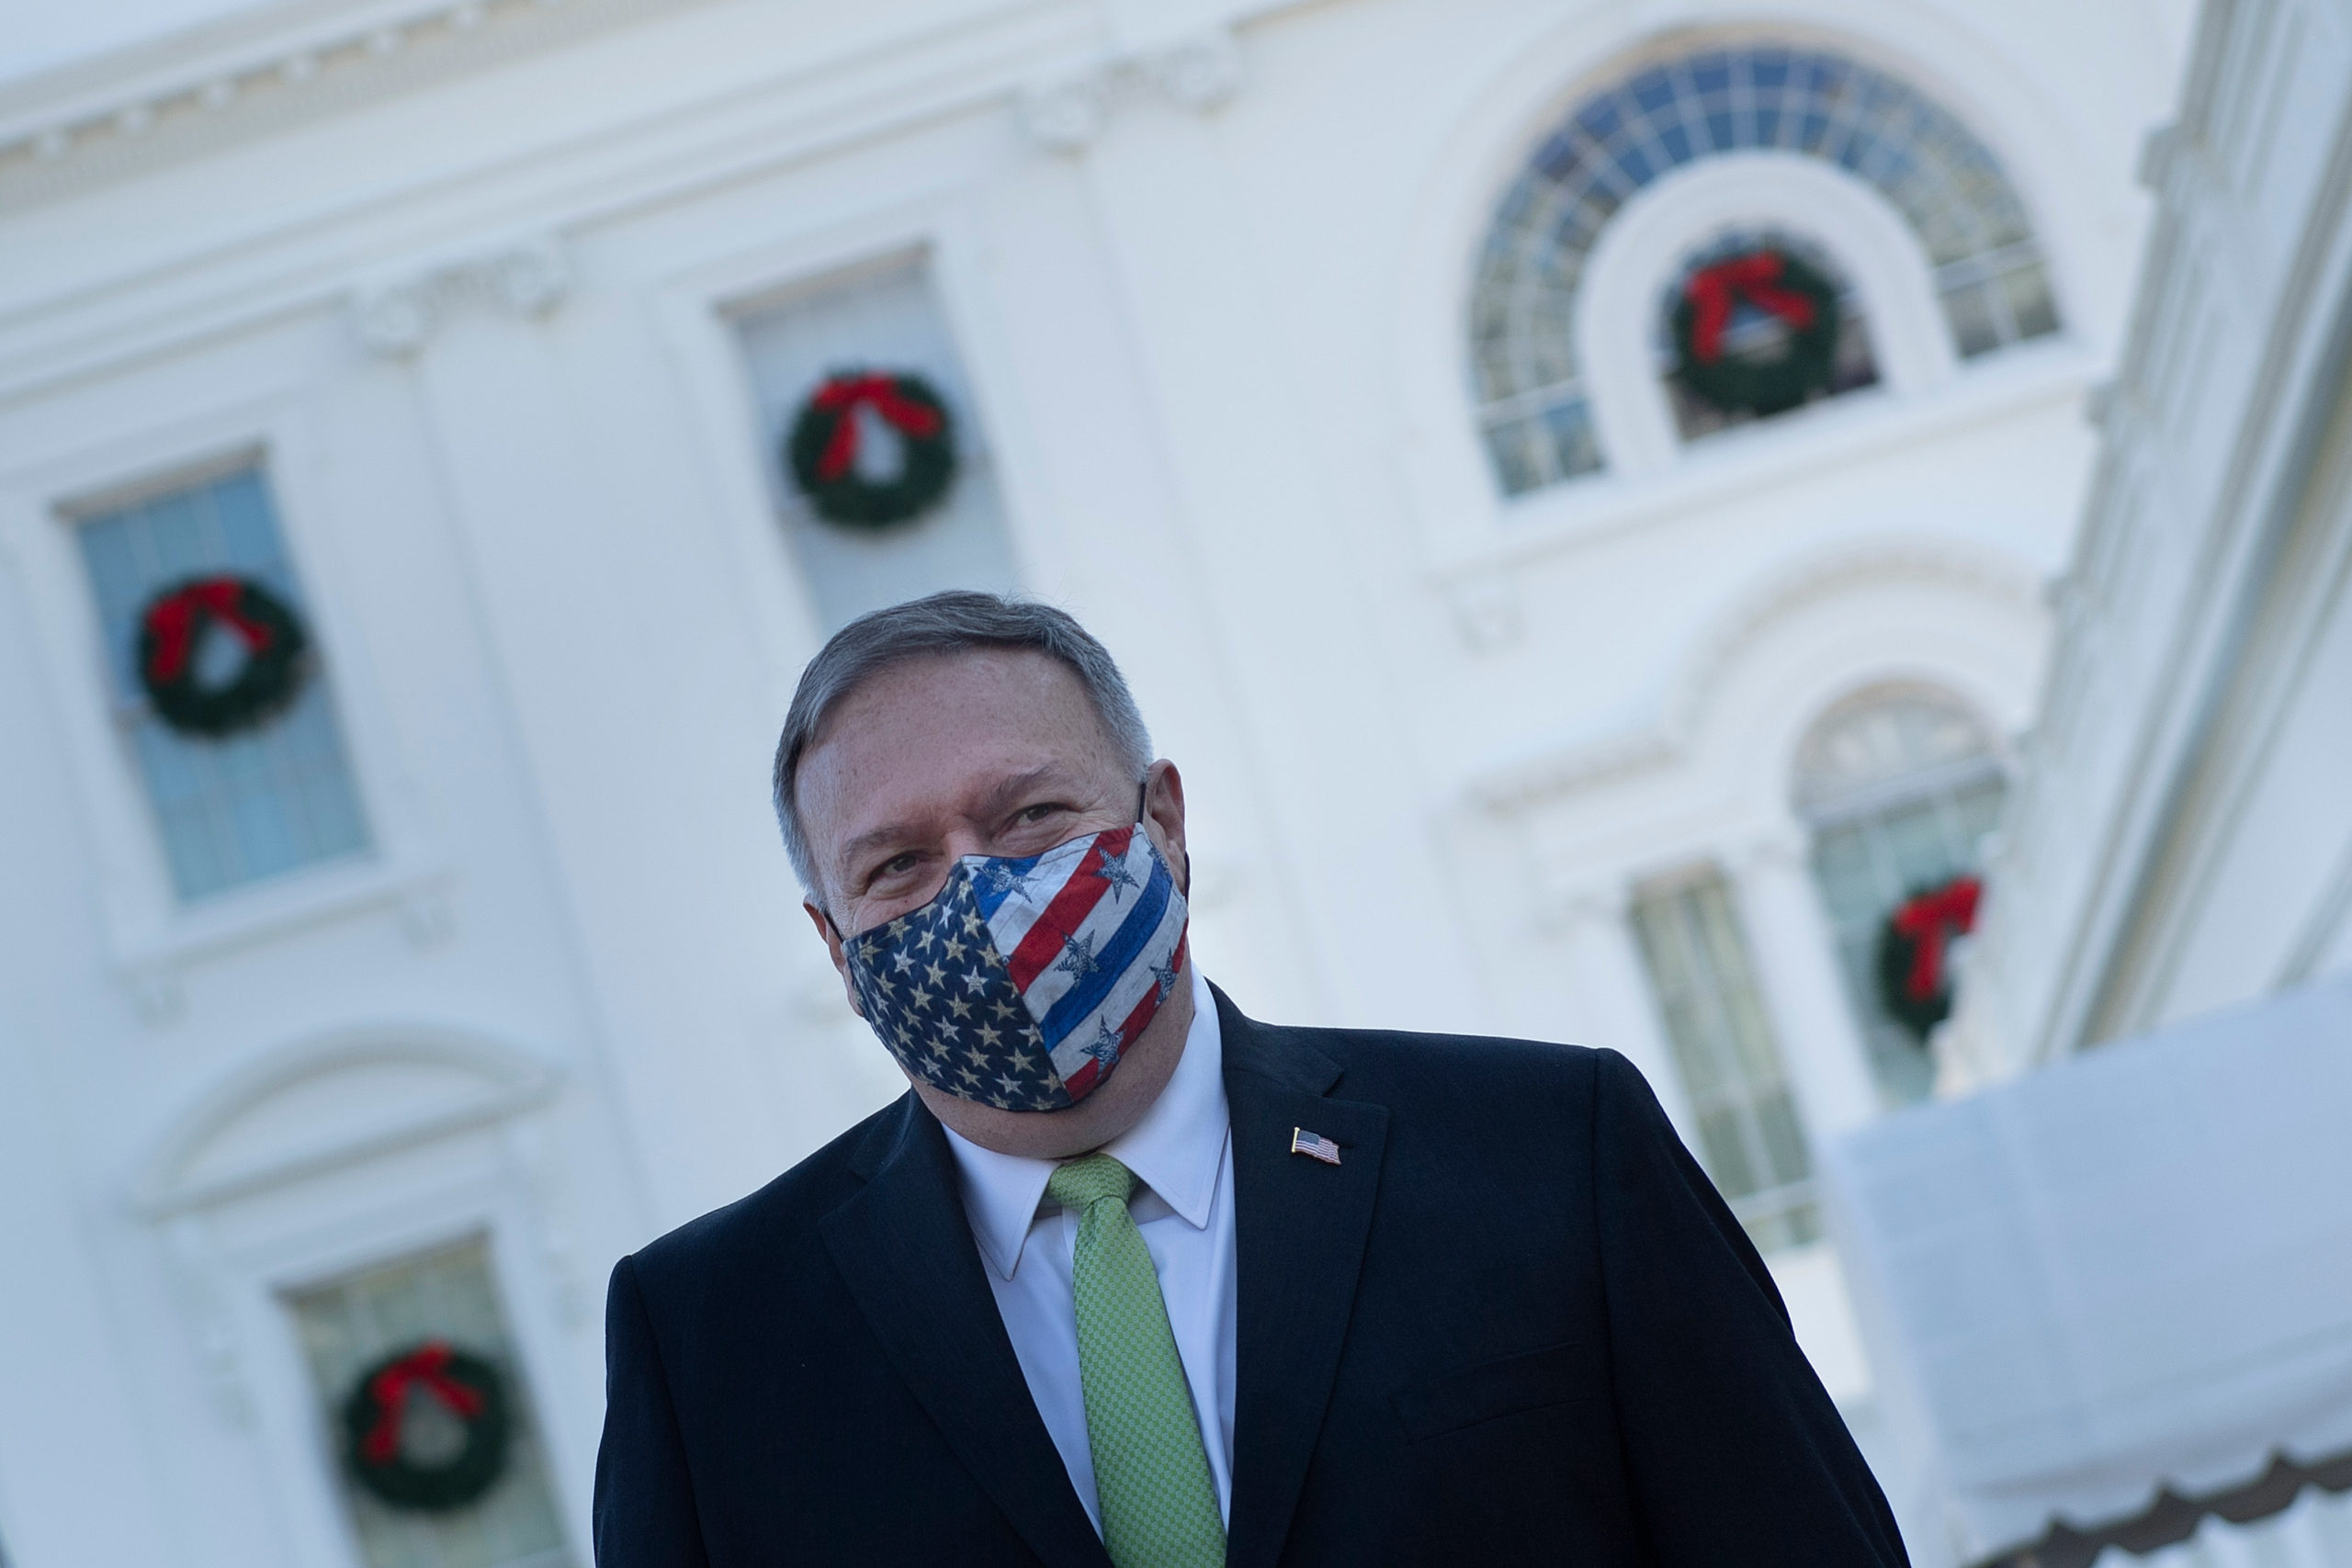 US Secretary of State Mike Pompeo leaves the White House after visiting with family December 11, 2020, in Washington, DC. (Photo by BRENDAN SMIALOWSKI/AFP via Getty Images)